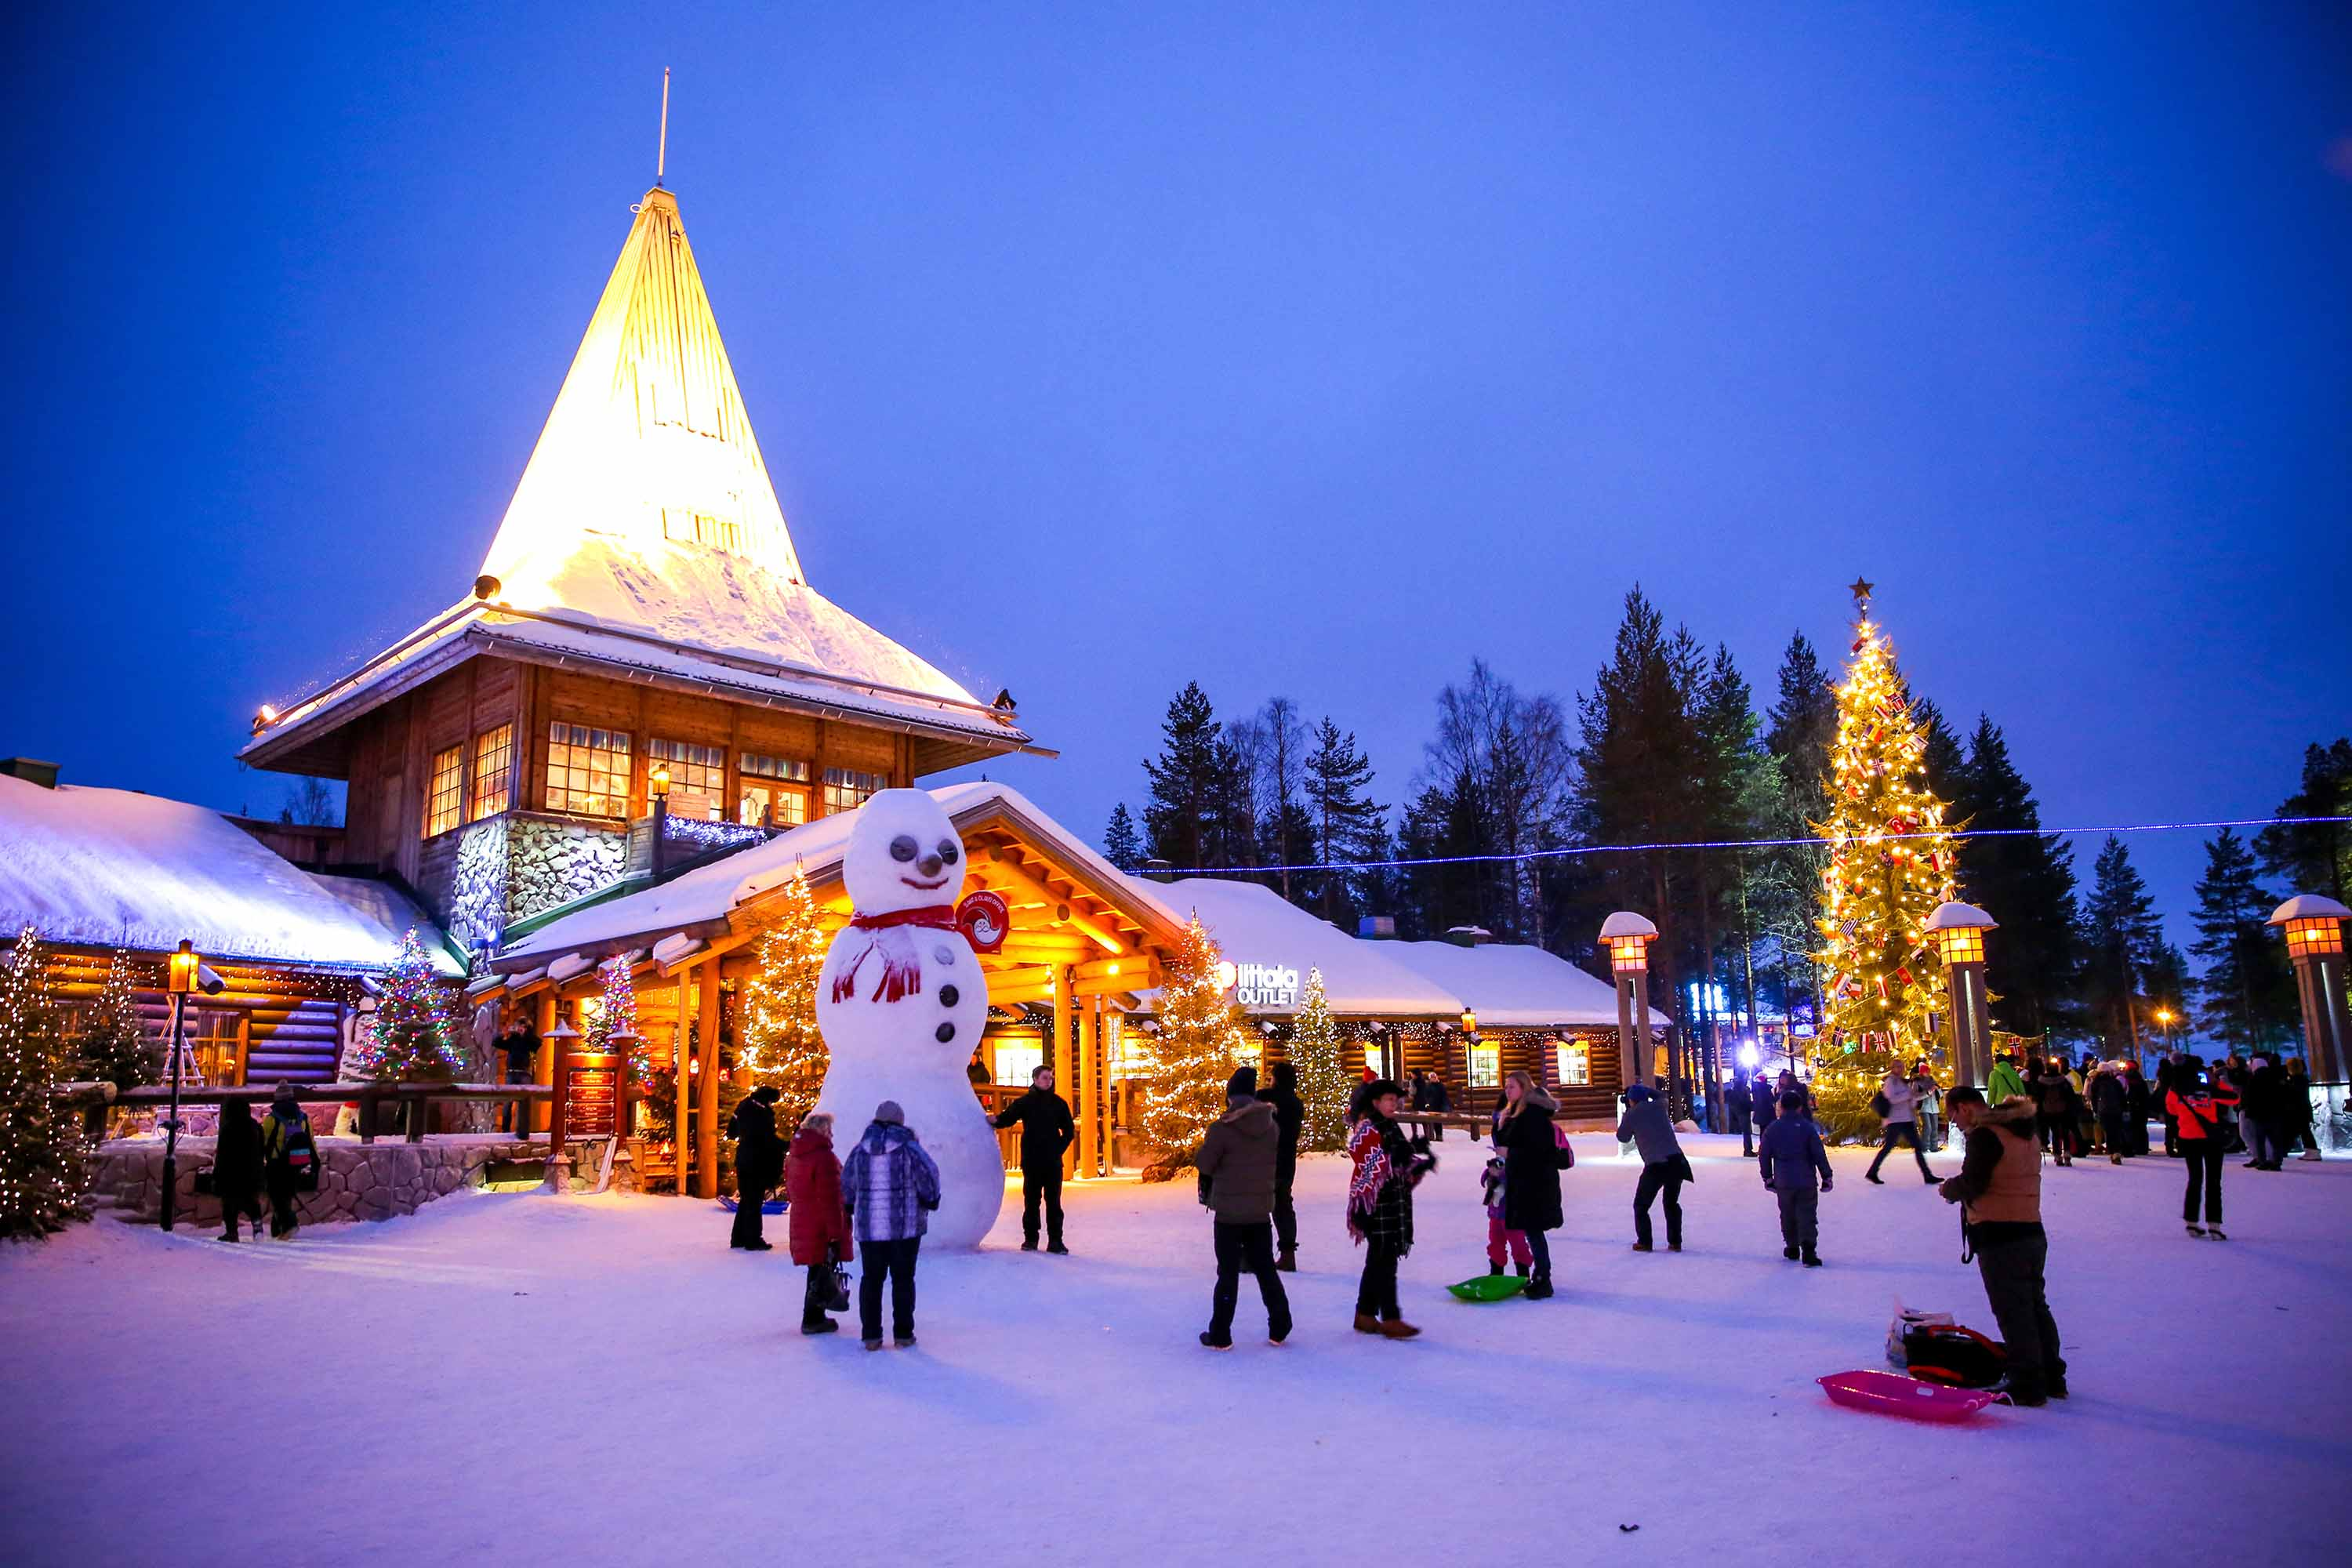 Lapland S Lack Of Snow Triggers Holiday Worries In Finland Cnn Travel